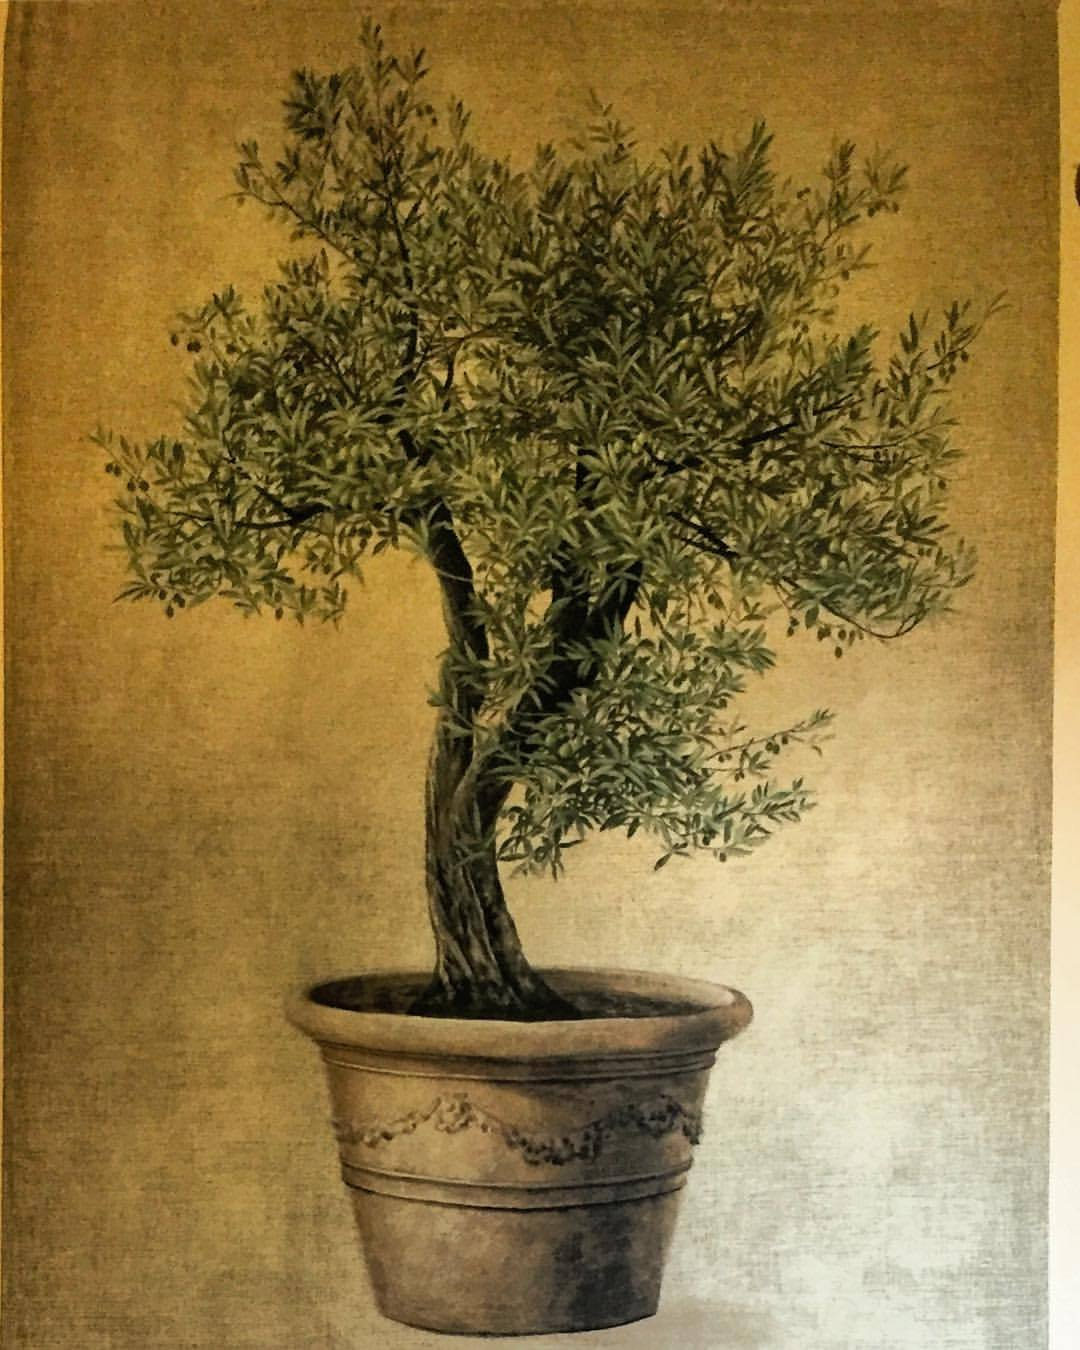 Extending the olive branch.  -  #coexist #planetearth #onlygameintown